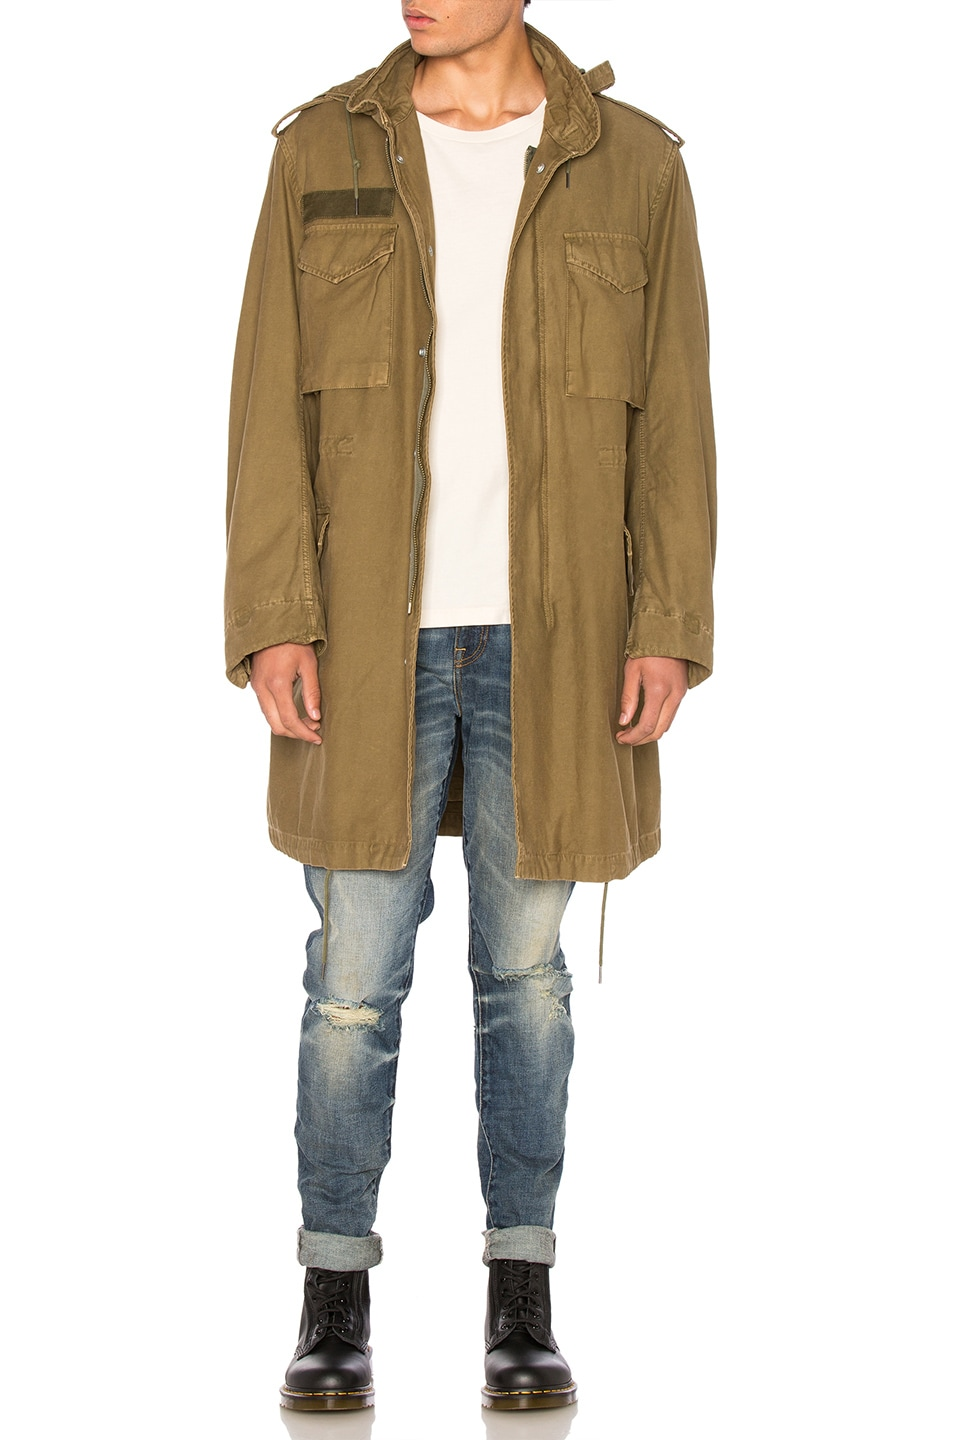 3495d671d996 Image 1 of R13 Surplus Oversized M65 Jacket in Olive